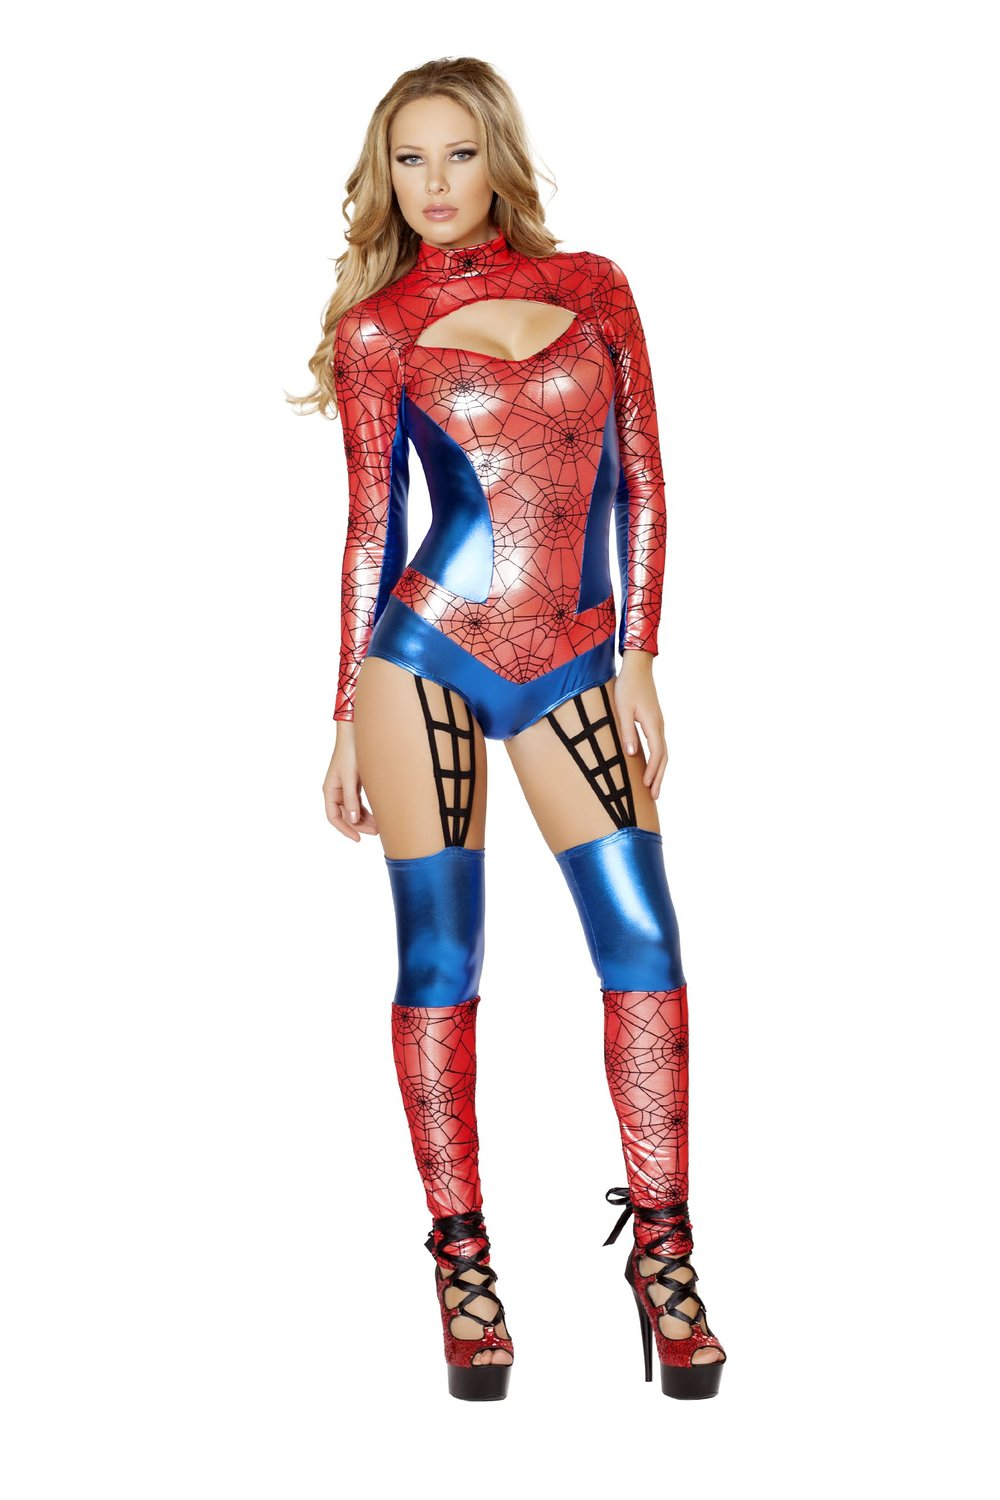 Amazon.com: roma costume women's 1 piece web crawler: clothing